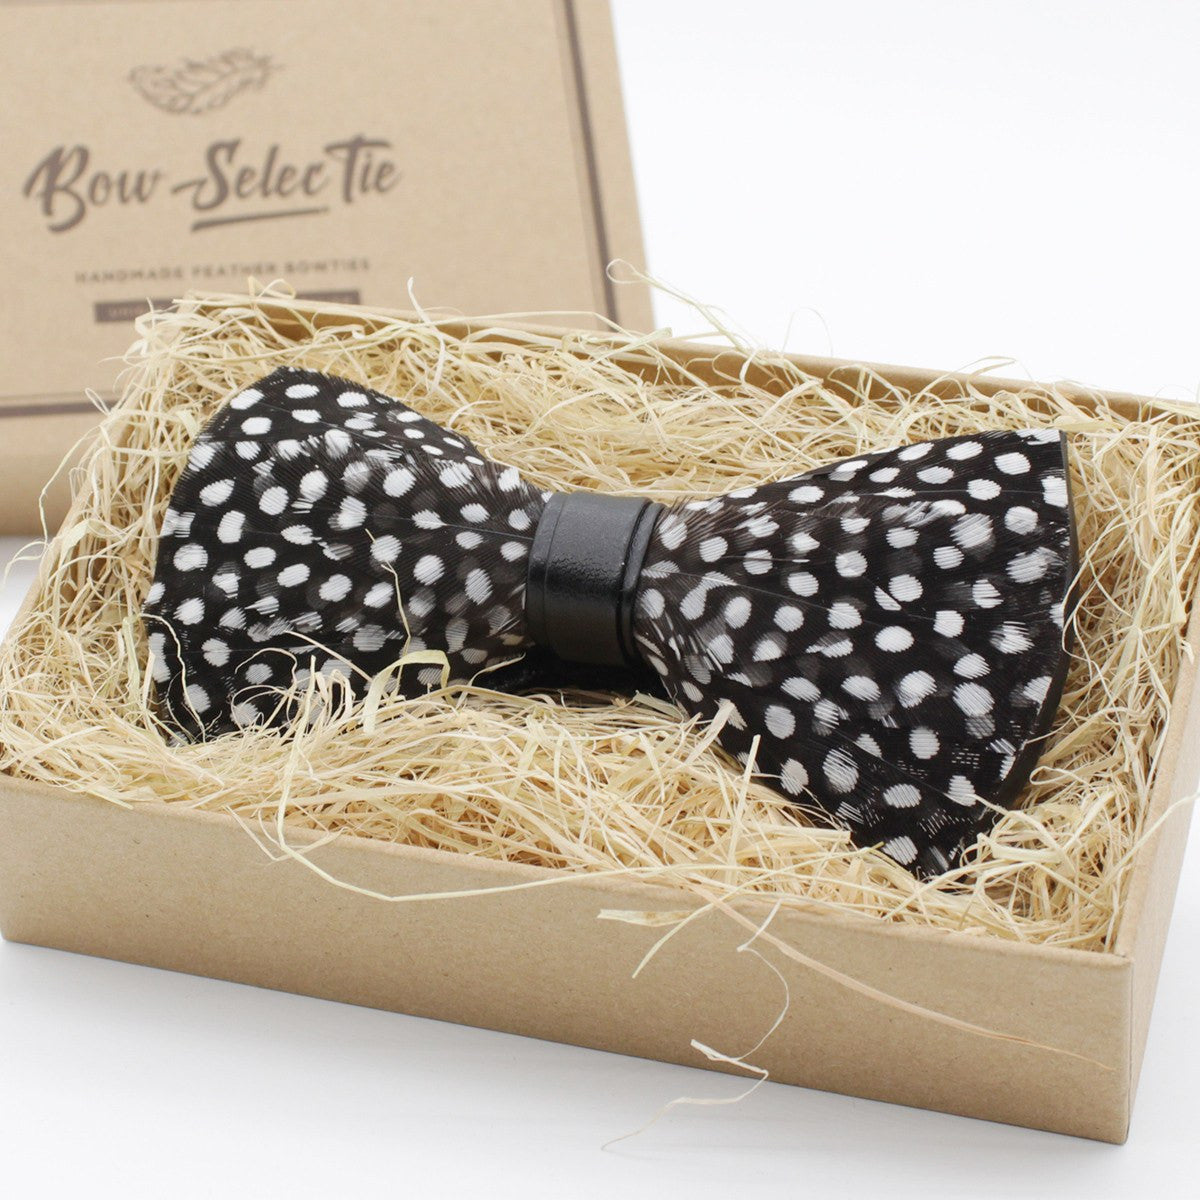 f24ecb31f014 10+ Feather Bow Ties – Bow Ties for Men – Bow SelecTie